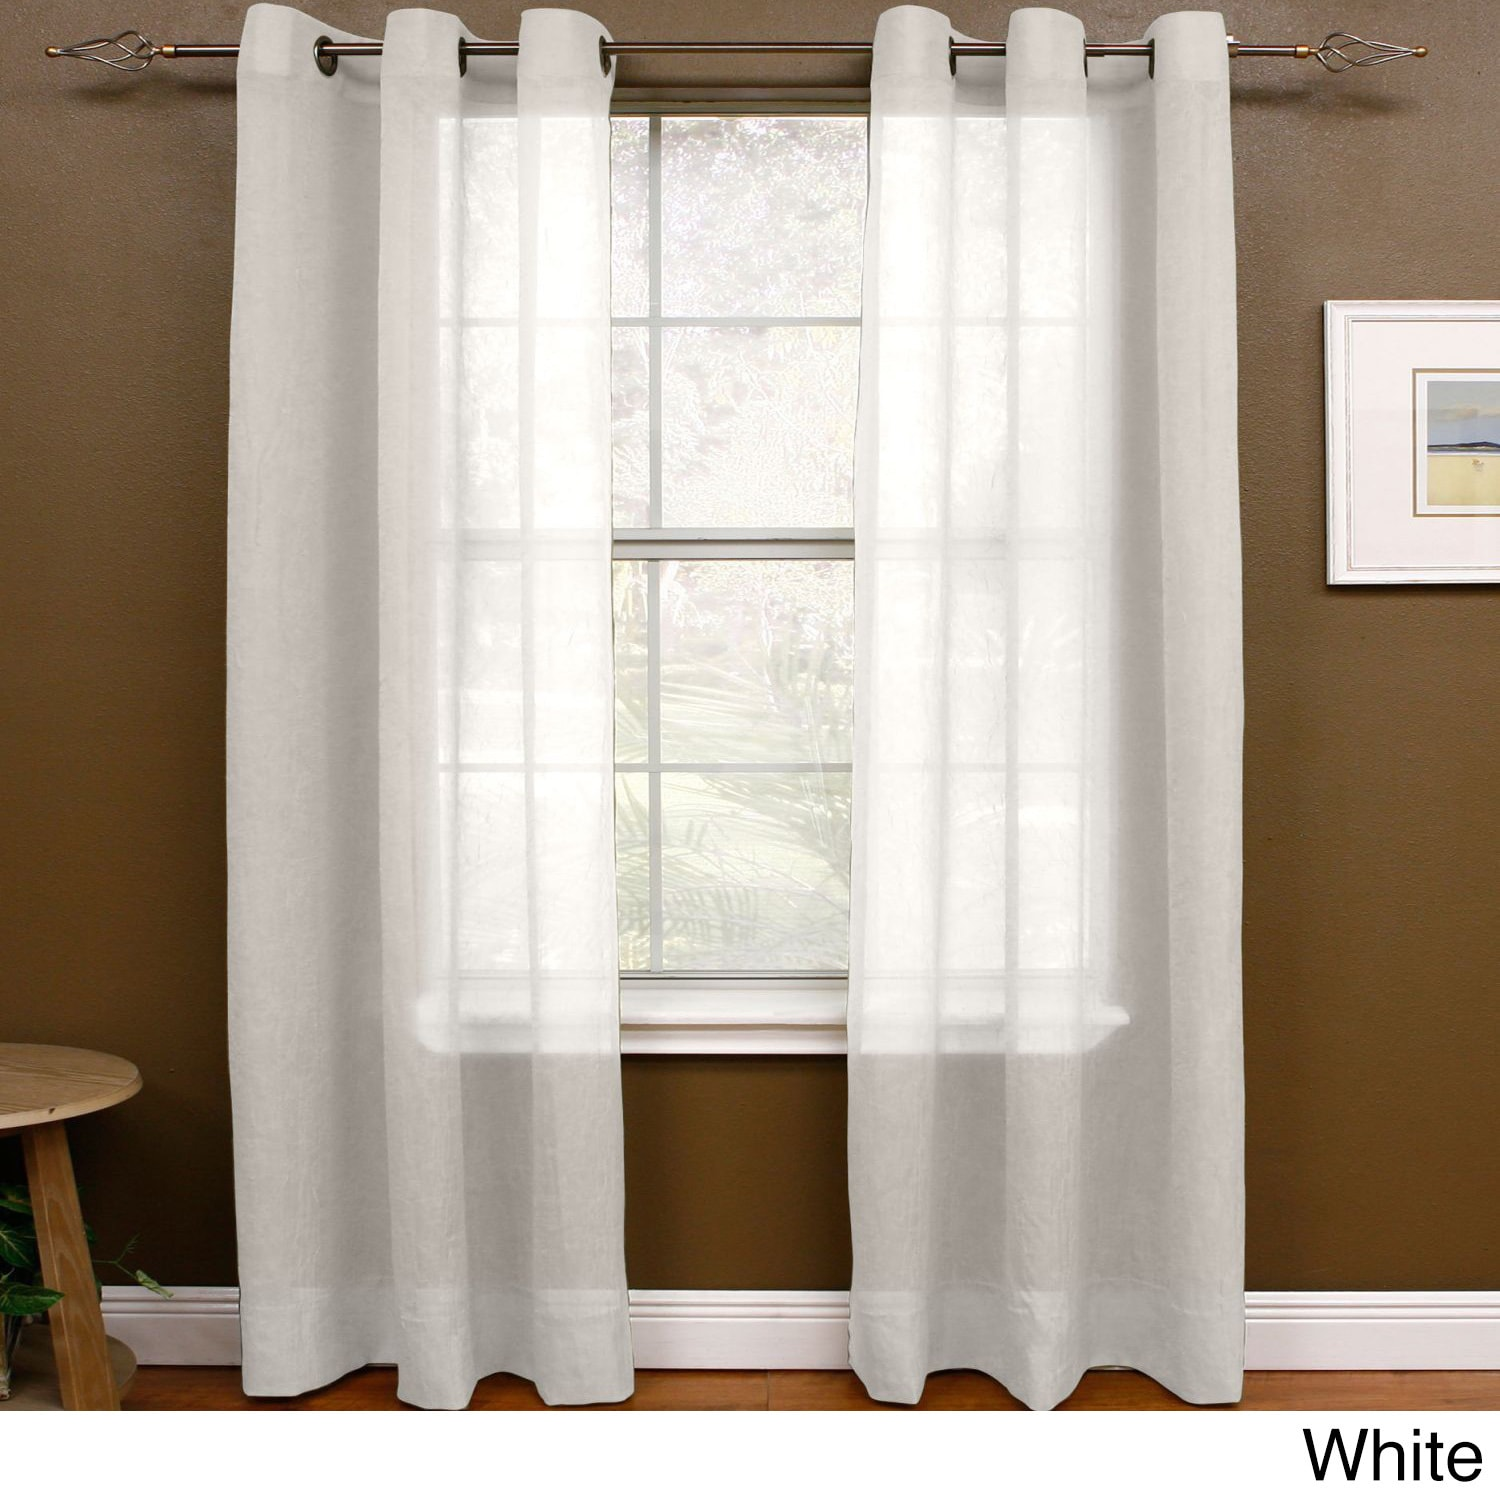 inch add decoration armchair ivory window lace pleated together along from rods wicker gray large paint home any to eclipse interior and fetching luxurious hailey plus space accessories curtains curtain of size with ideas accent